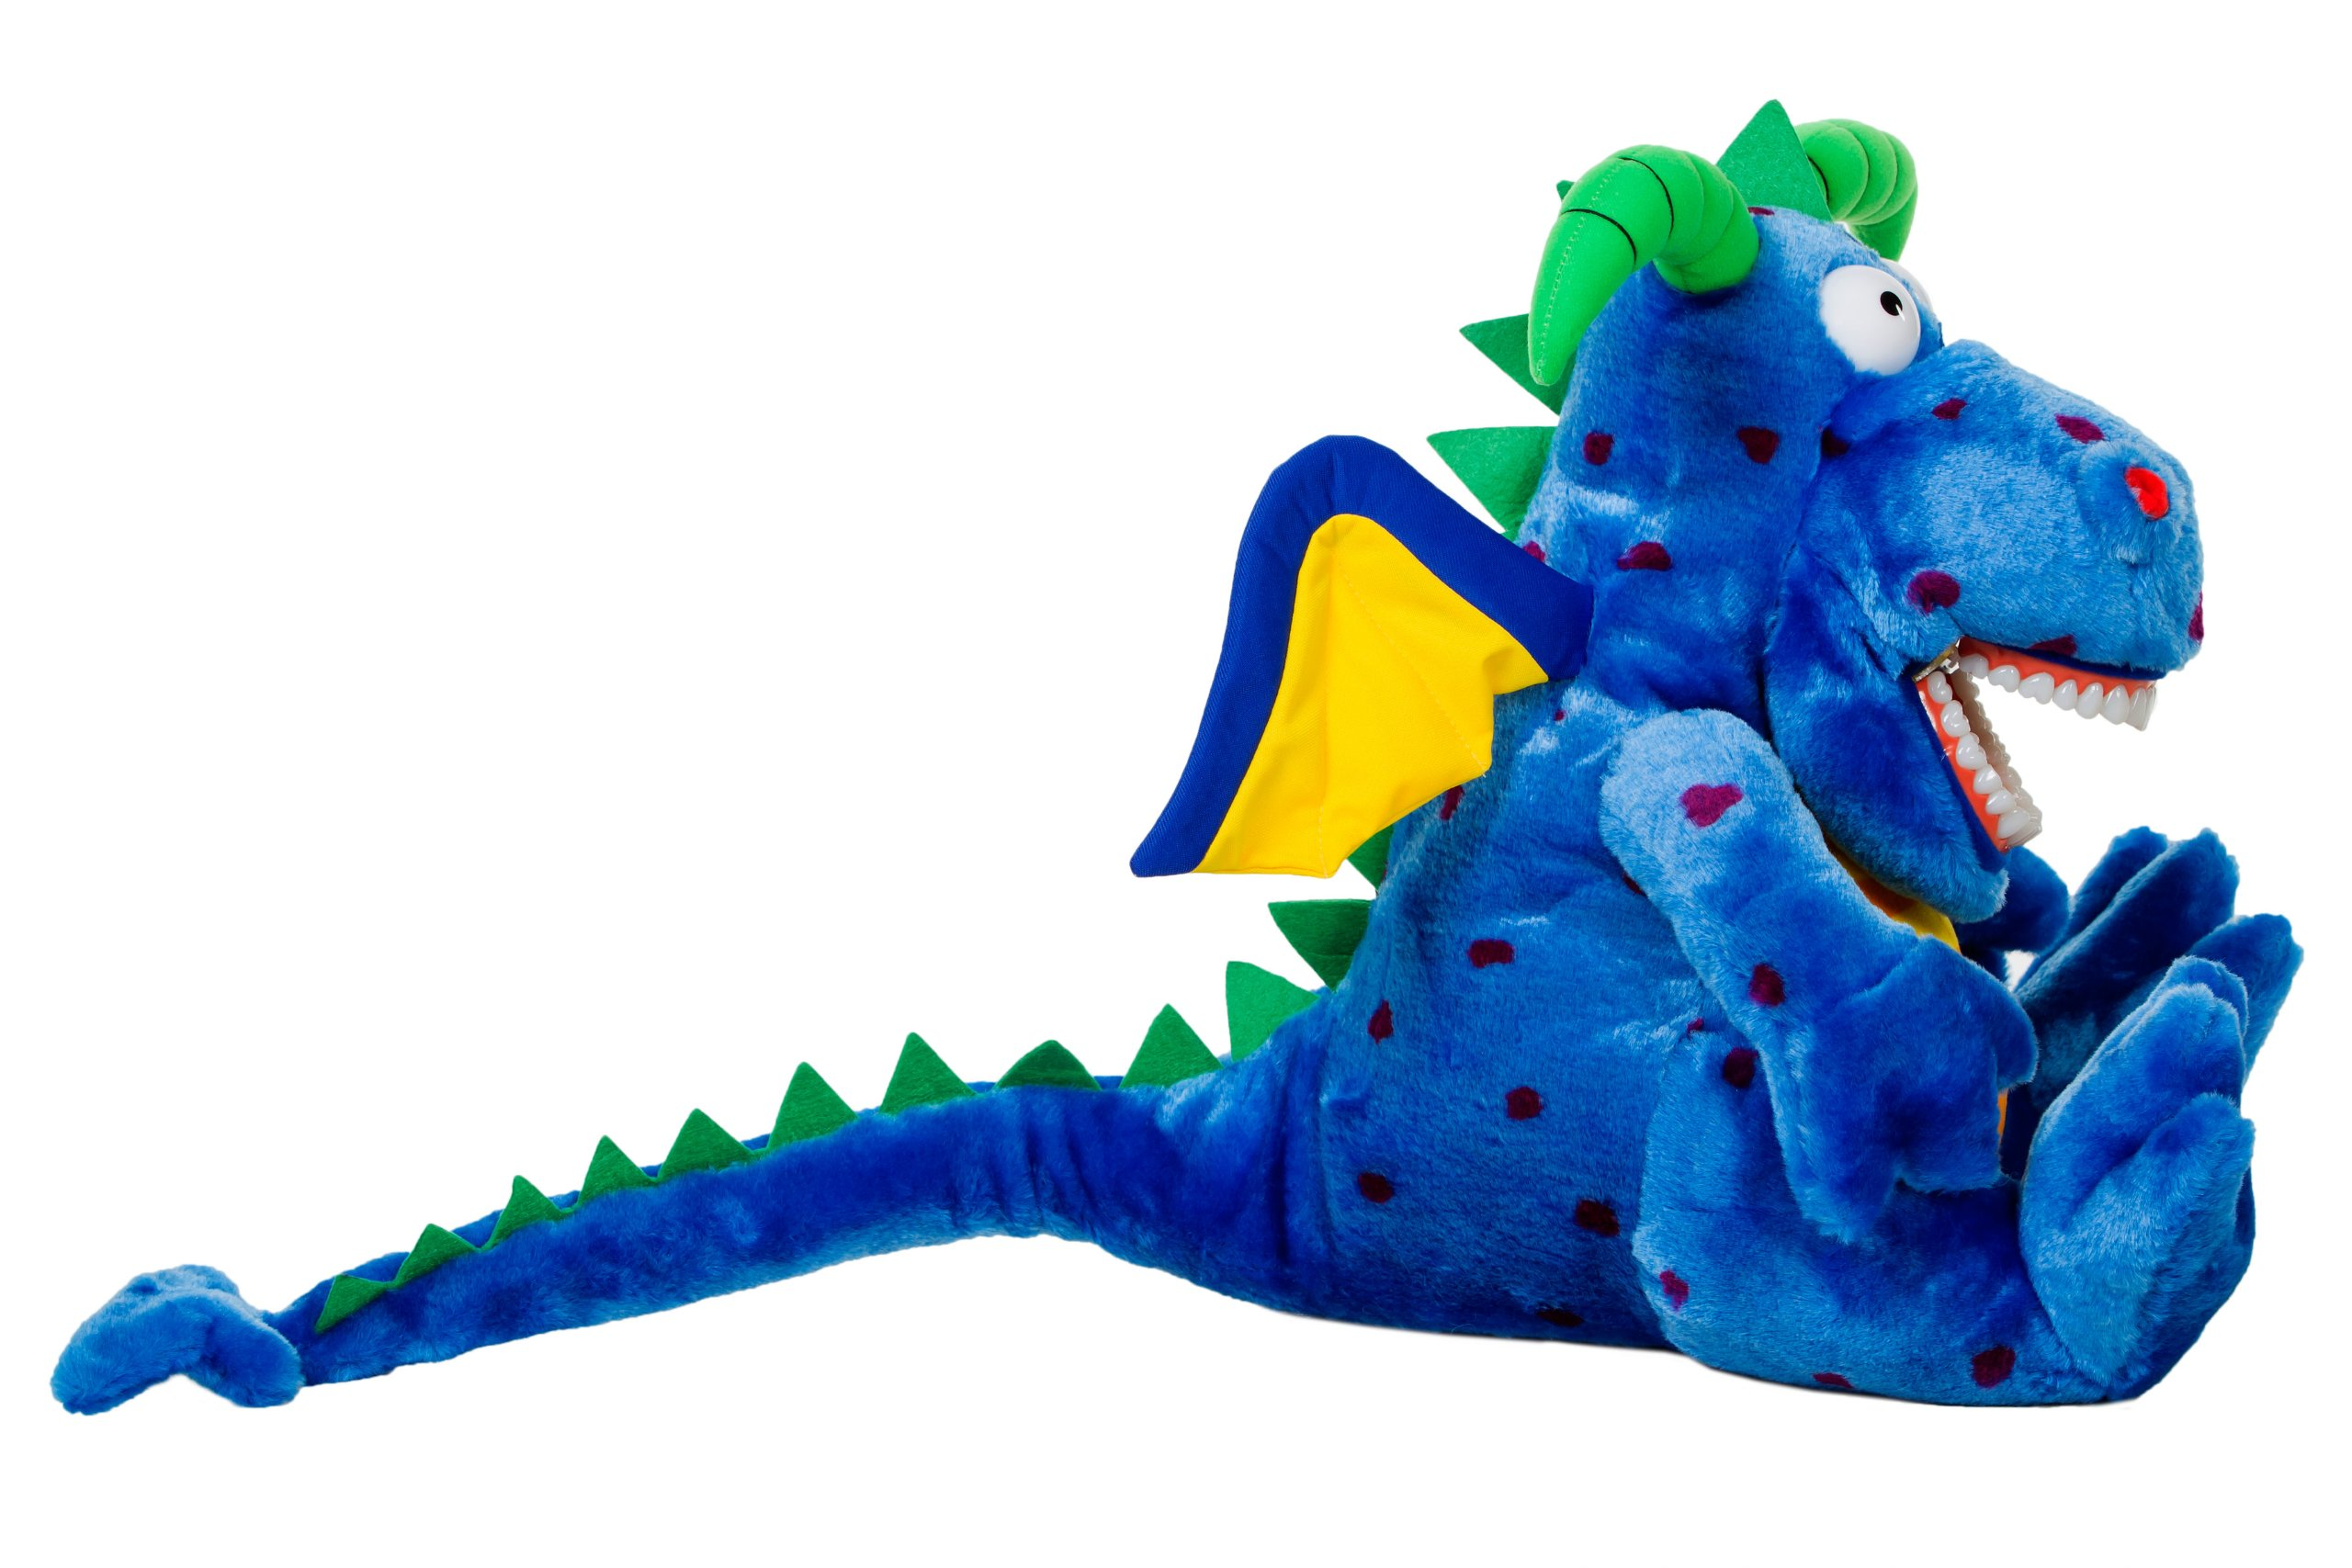 Oral Health Presentation Puppet Magi Dragon Educational Plush by StarSmilez (Image #1)